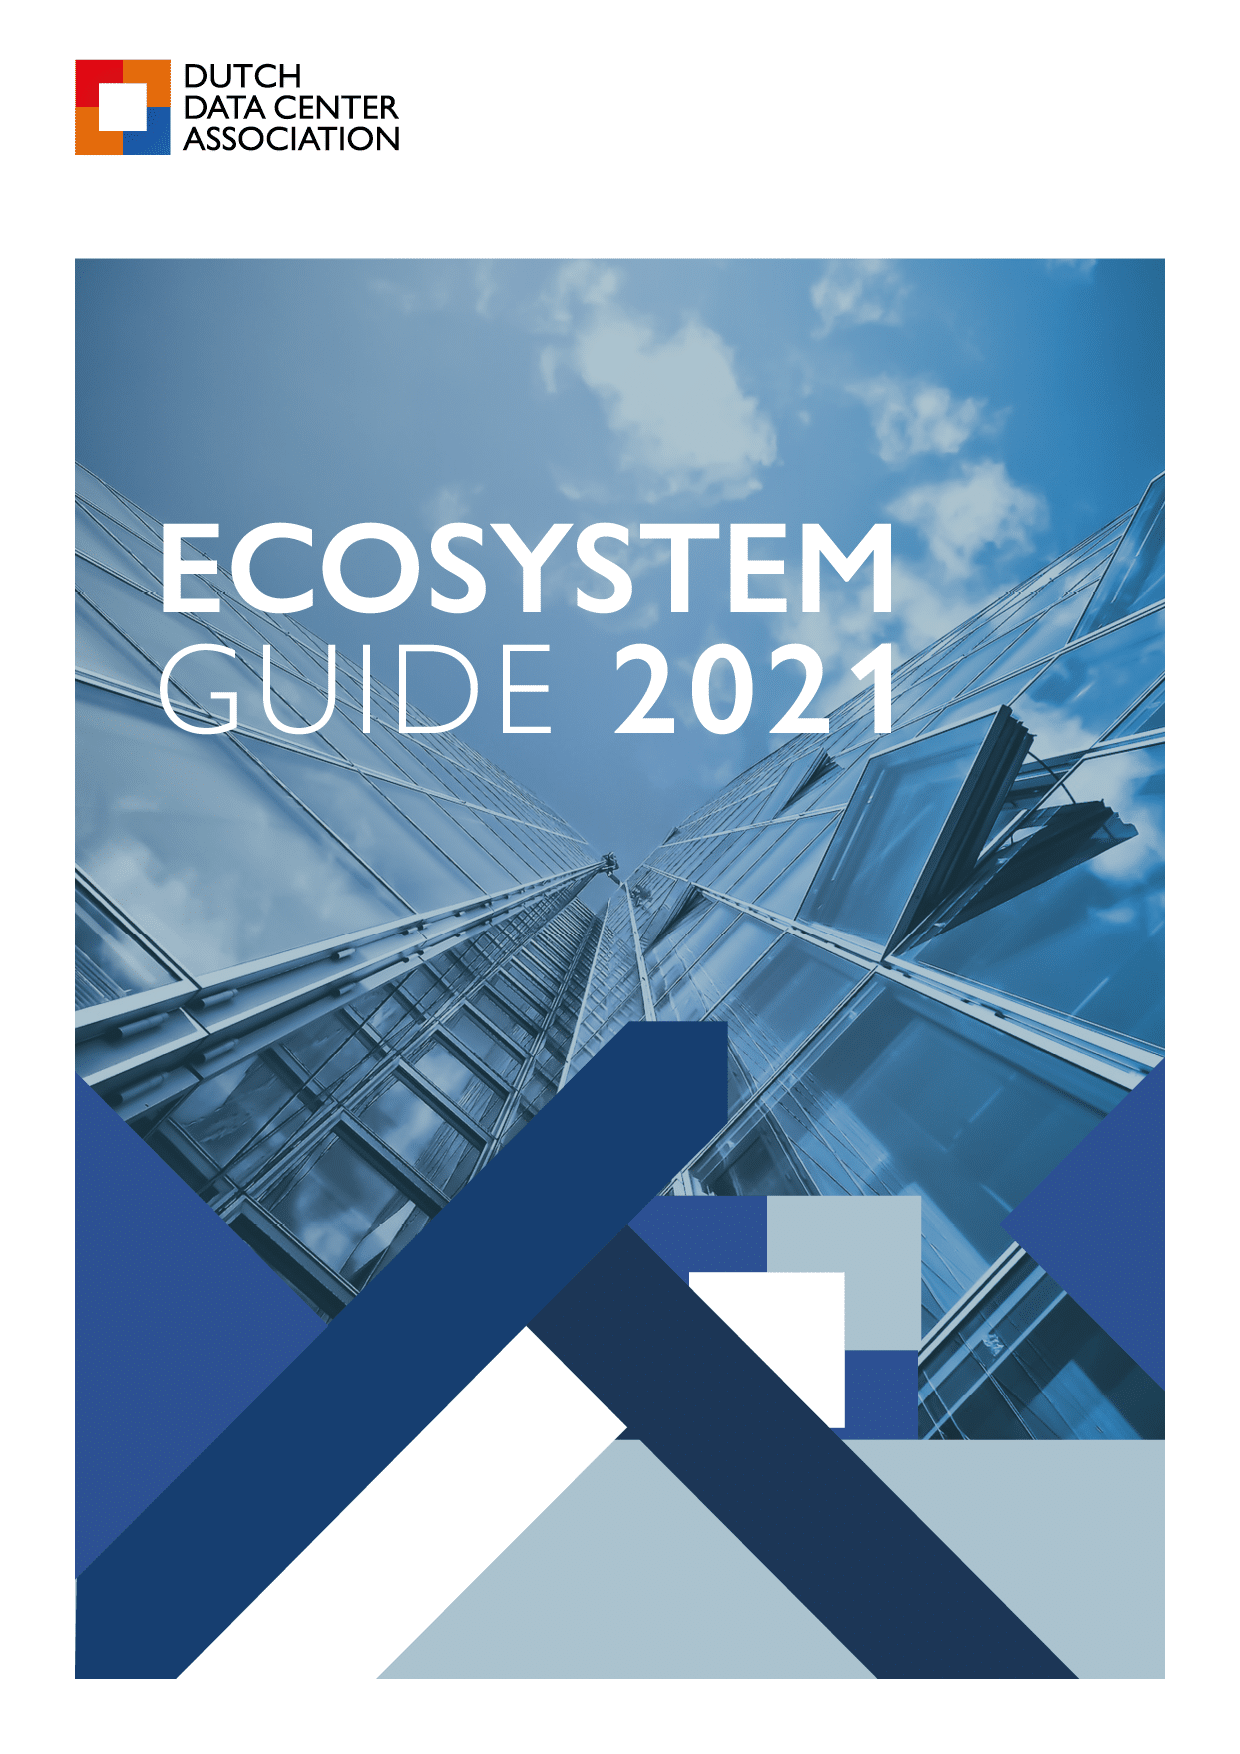 Ecosystem Guide 2021